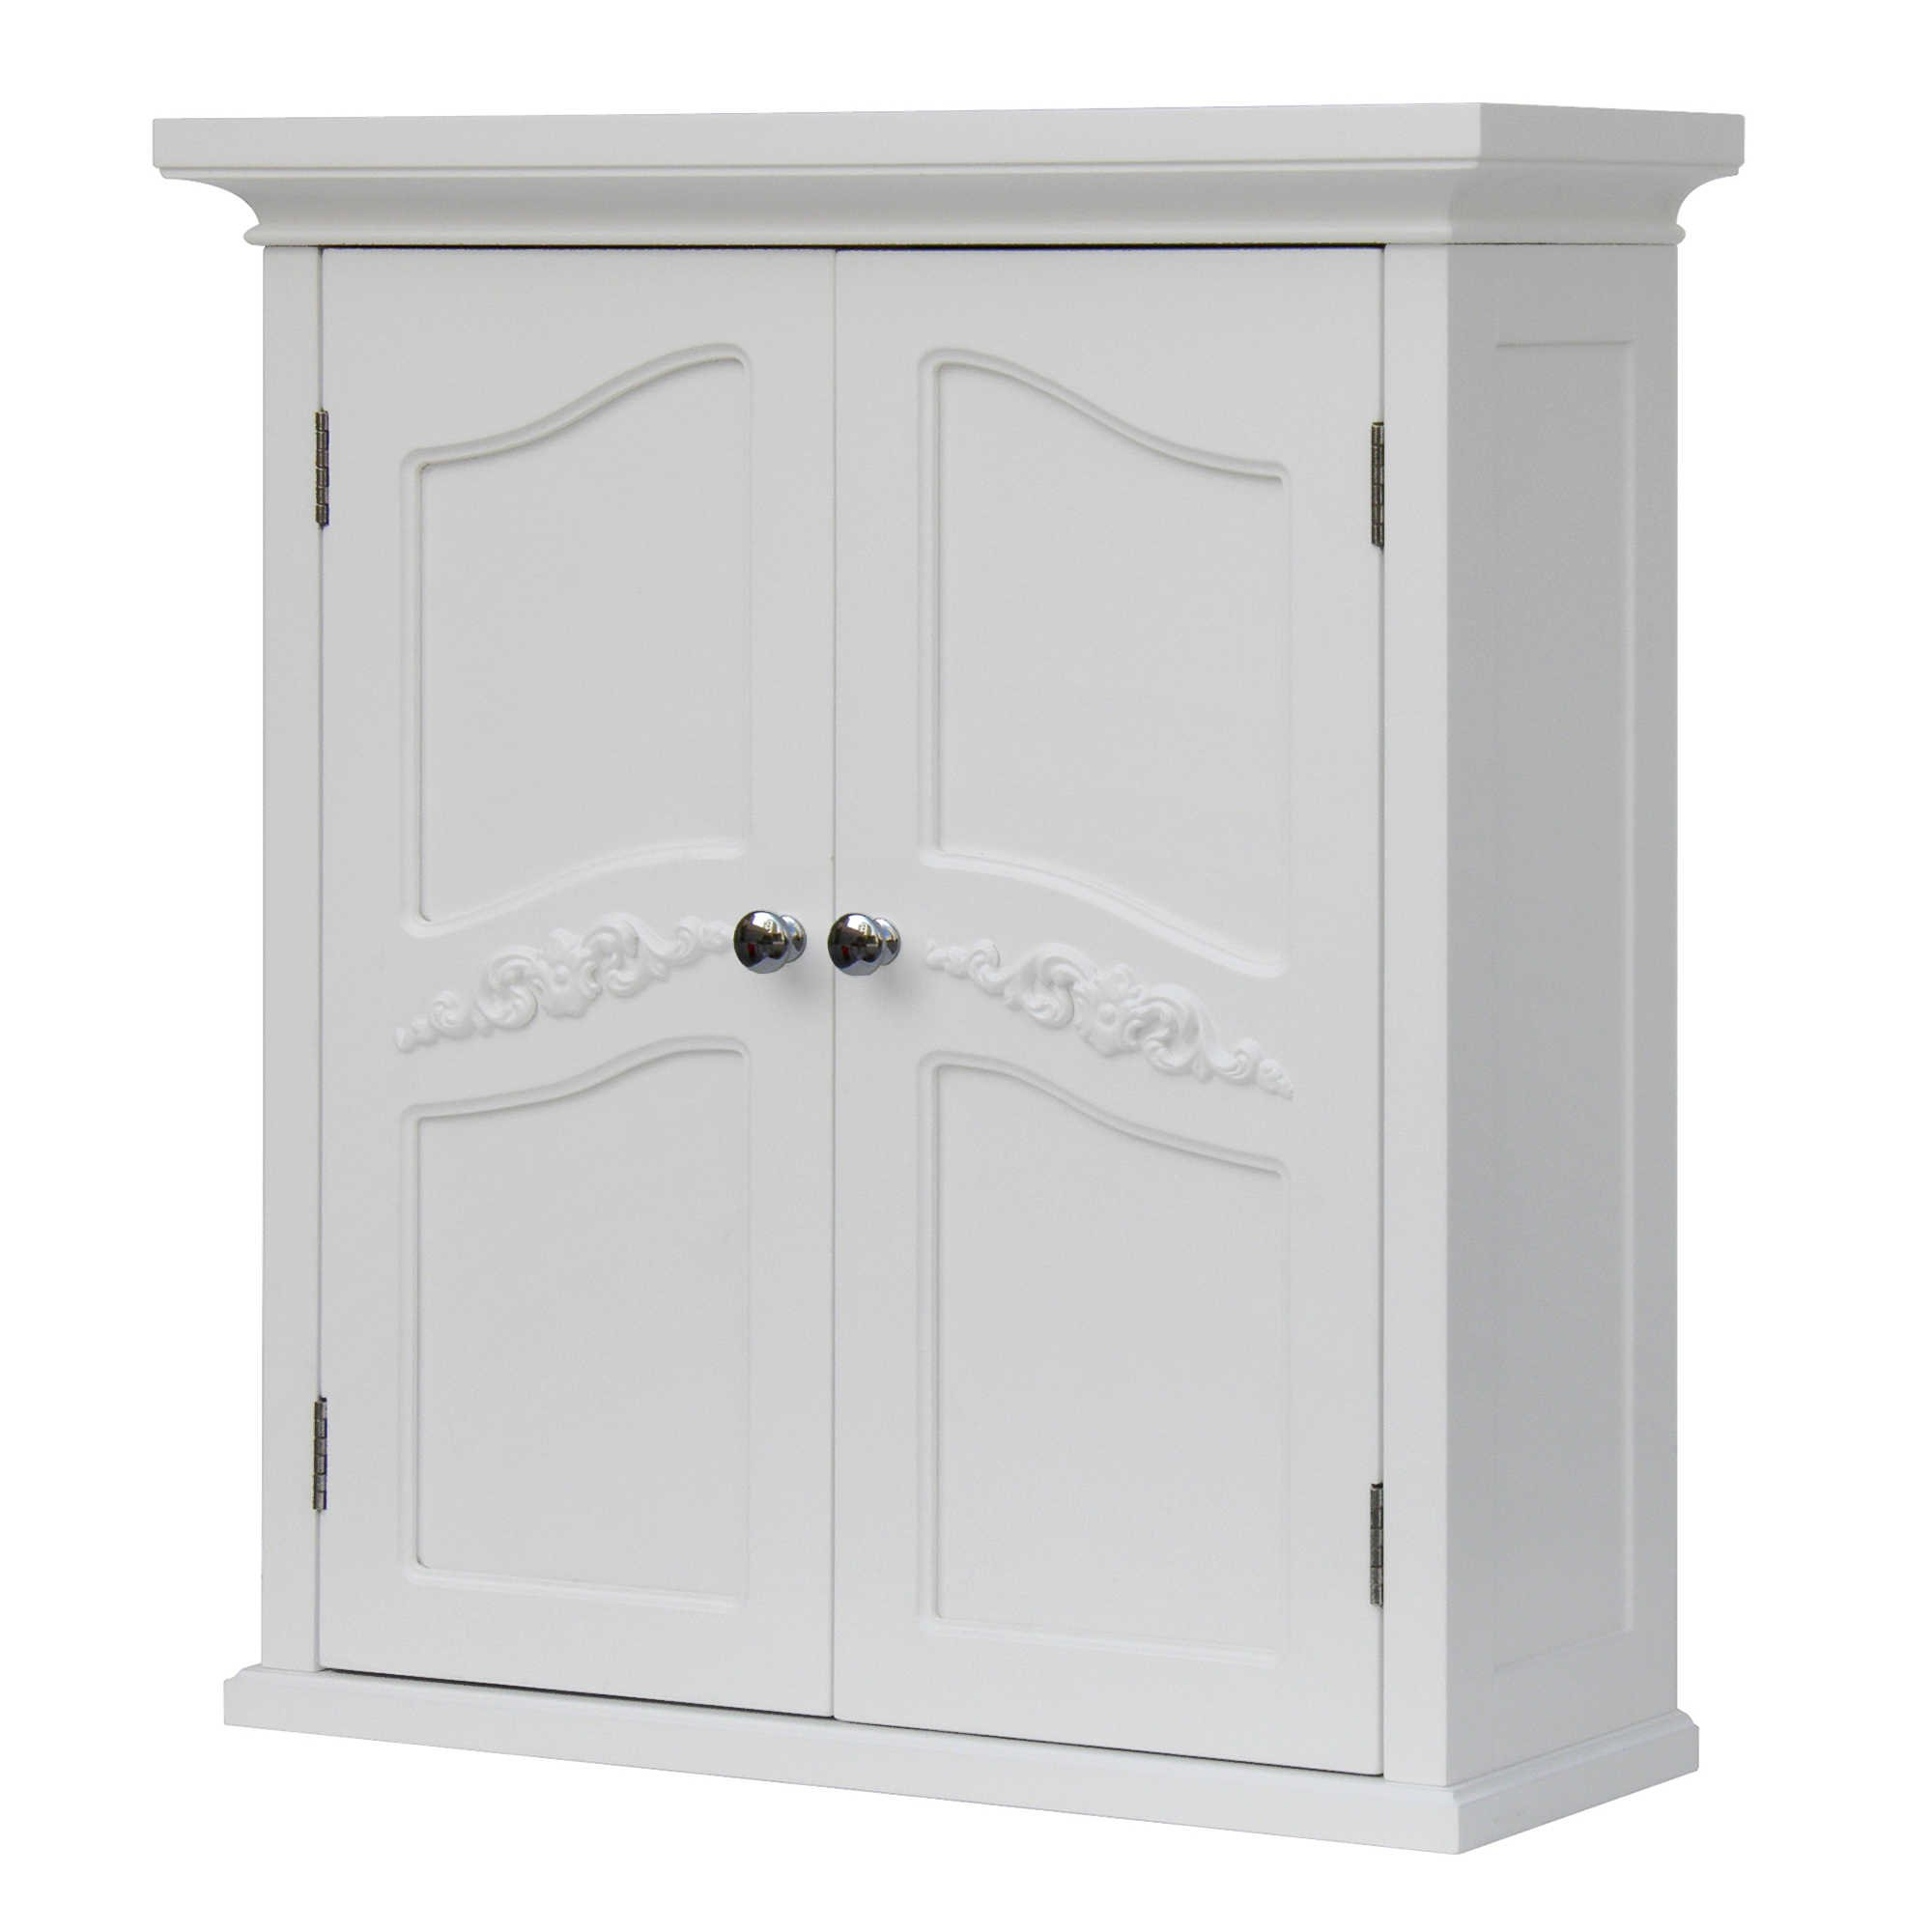 Elegant Home Fashions Collection Elegant Styling 2-Door Wall Cabinet in White, Features Interior Adjustable Shelves